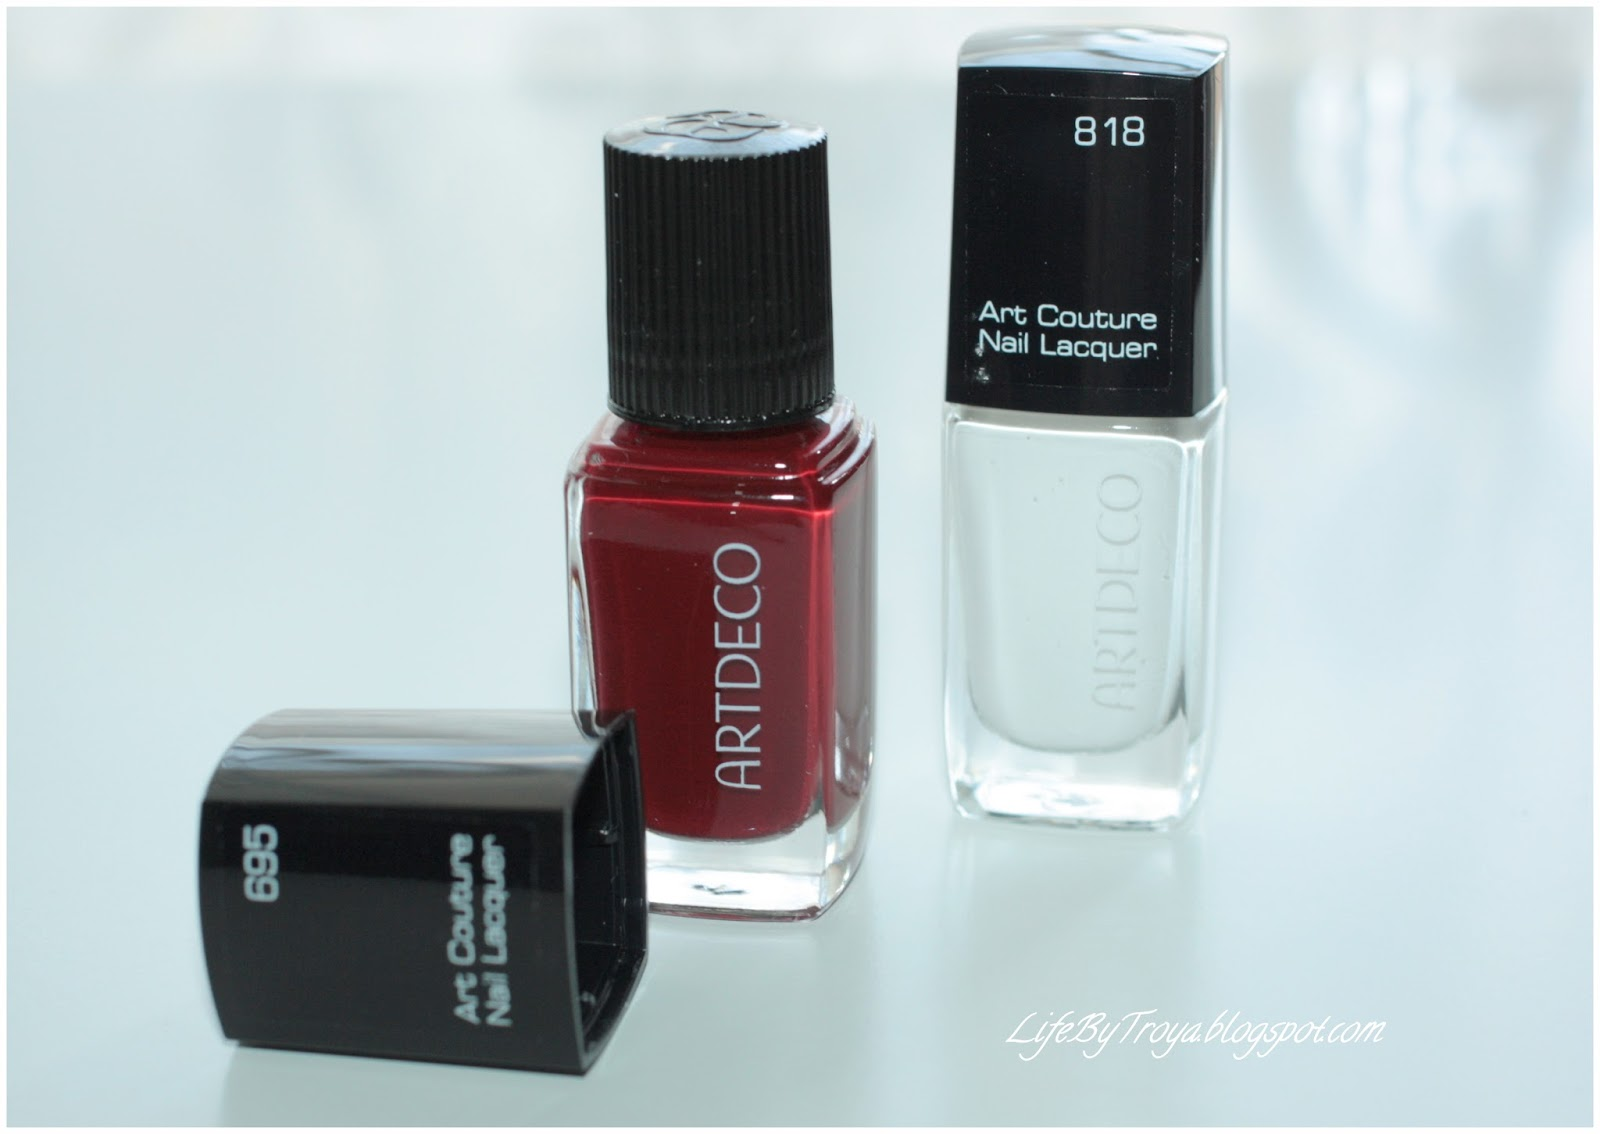 Couture art artdeco nail lacquer summer collection forecasting to wear for spring in 2019